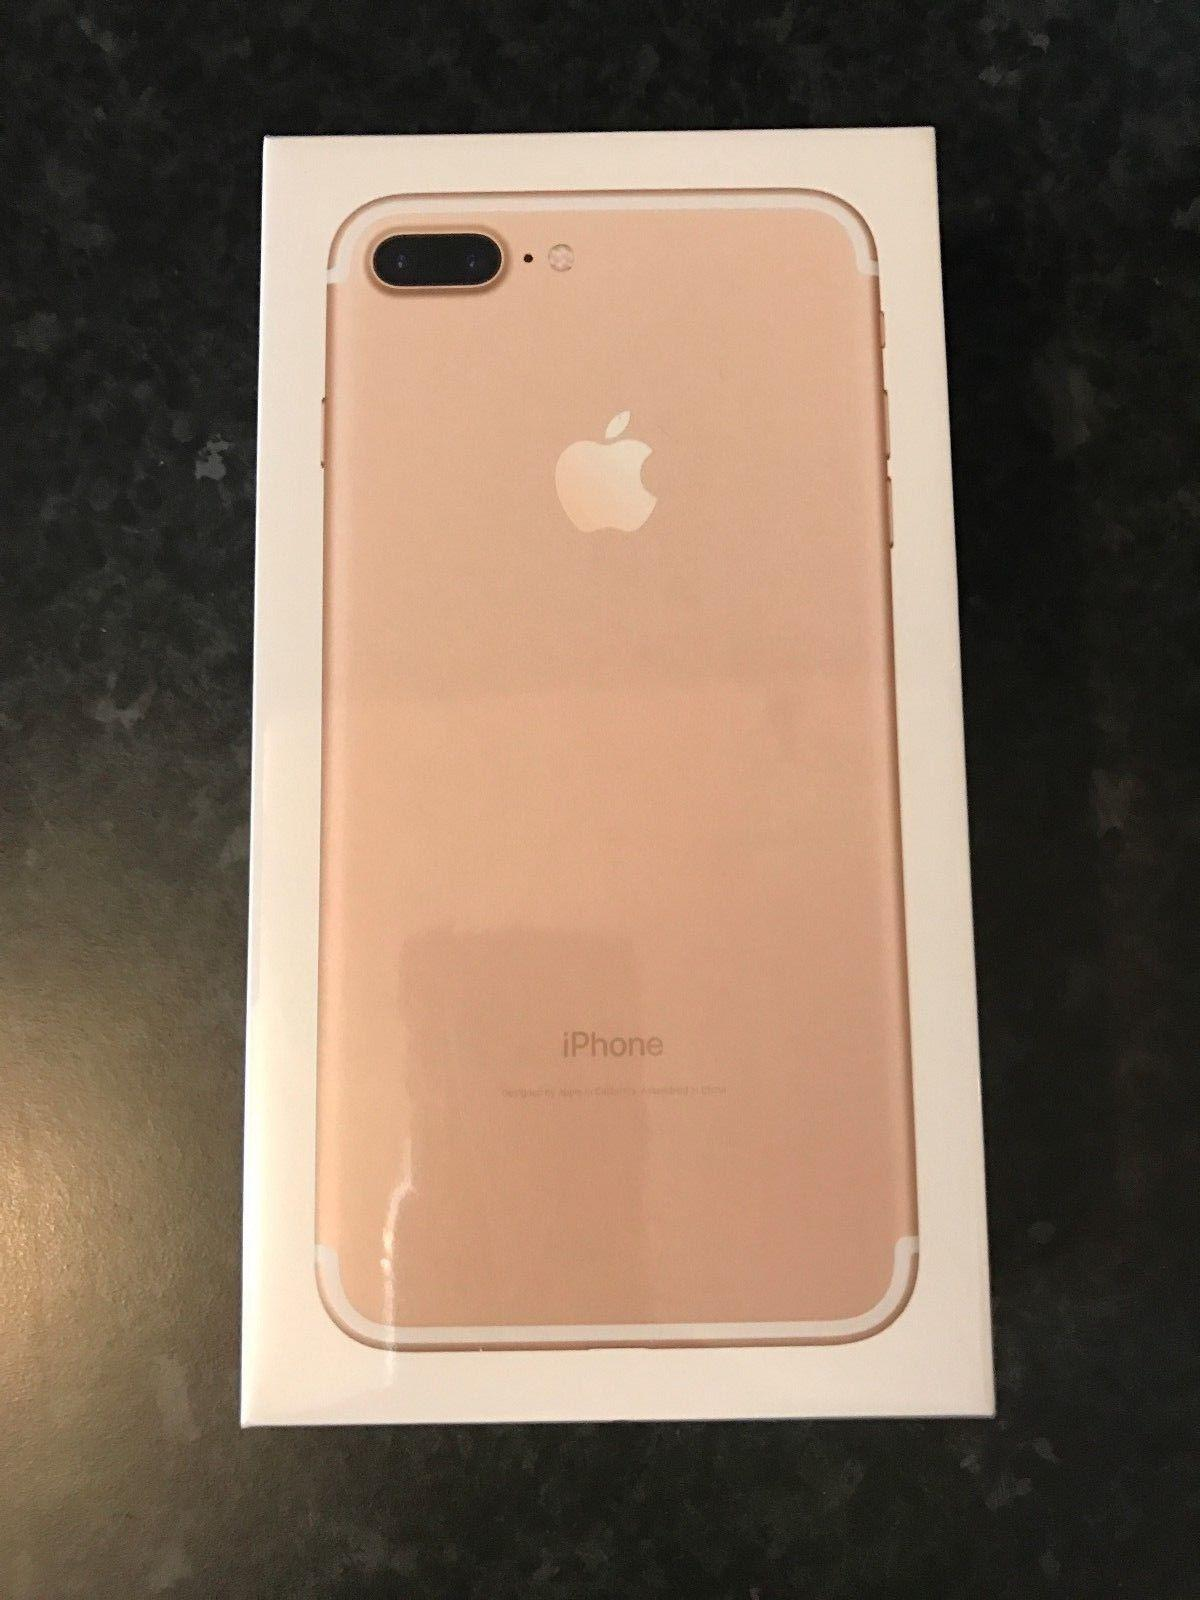 Apple Iphone 7 Plus Latest Model 32gb Gold Vodafone New 256gb Inter